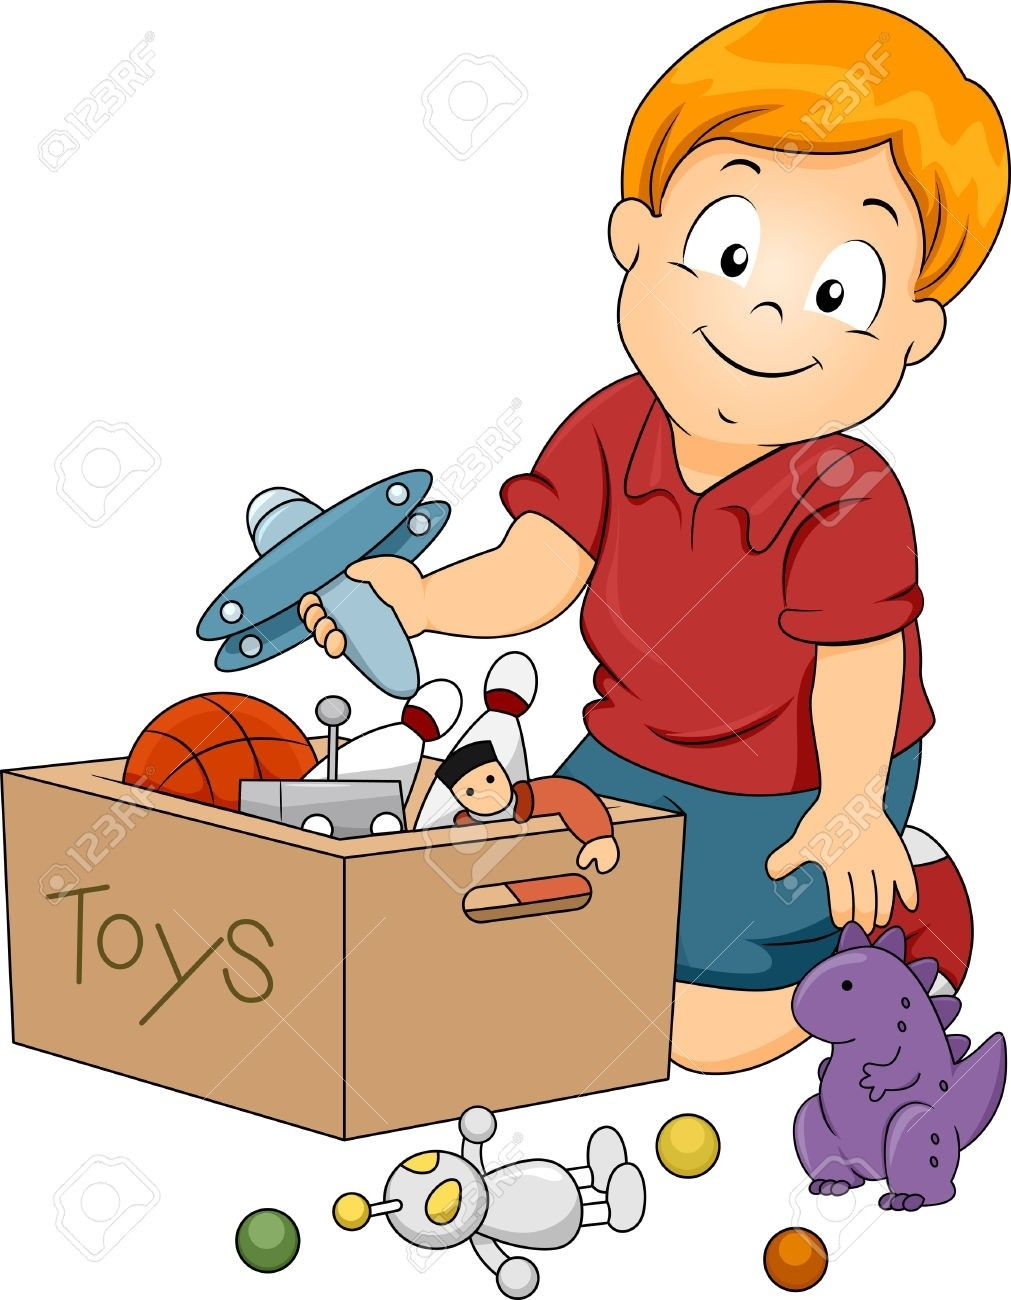 Kids Cleaning Up Toys Clipart